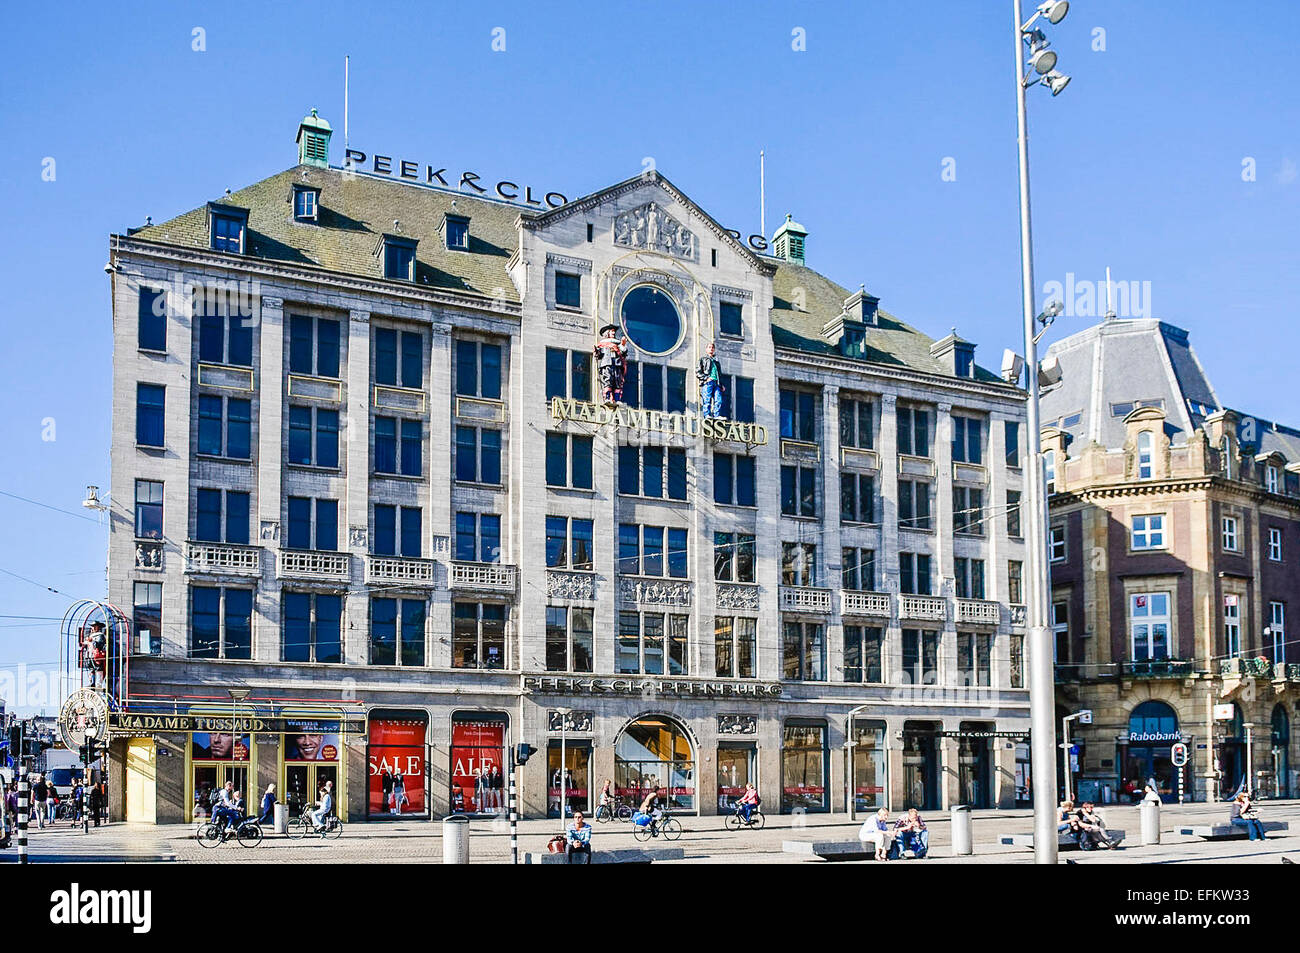 Madame Tussaud wax museum and Peek and Cloppenburg department store, Amsterdam - Stock Image